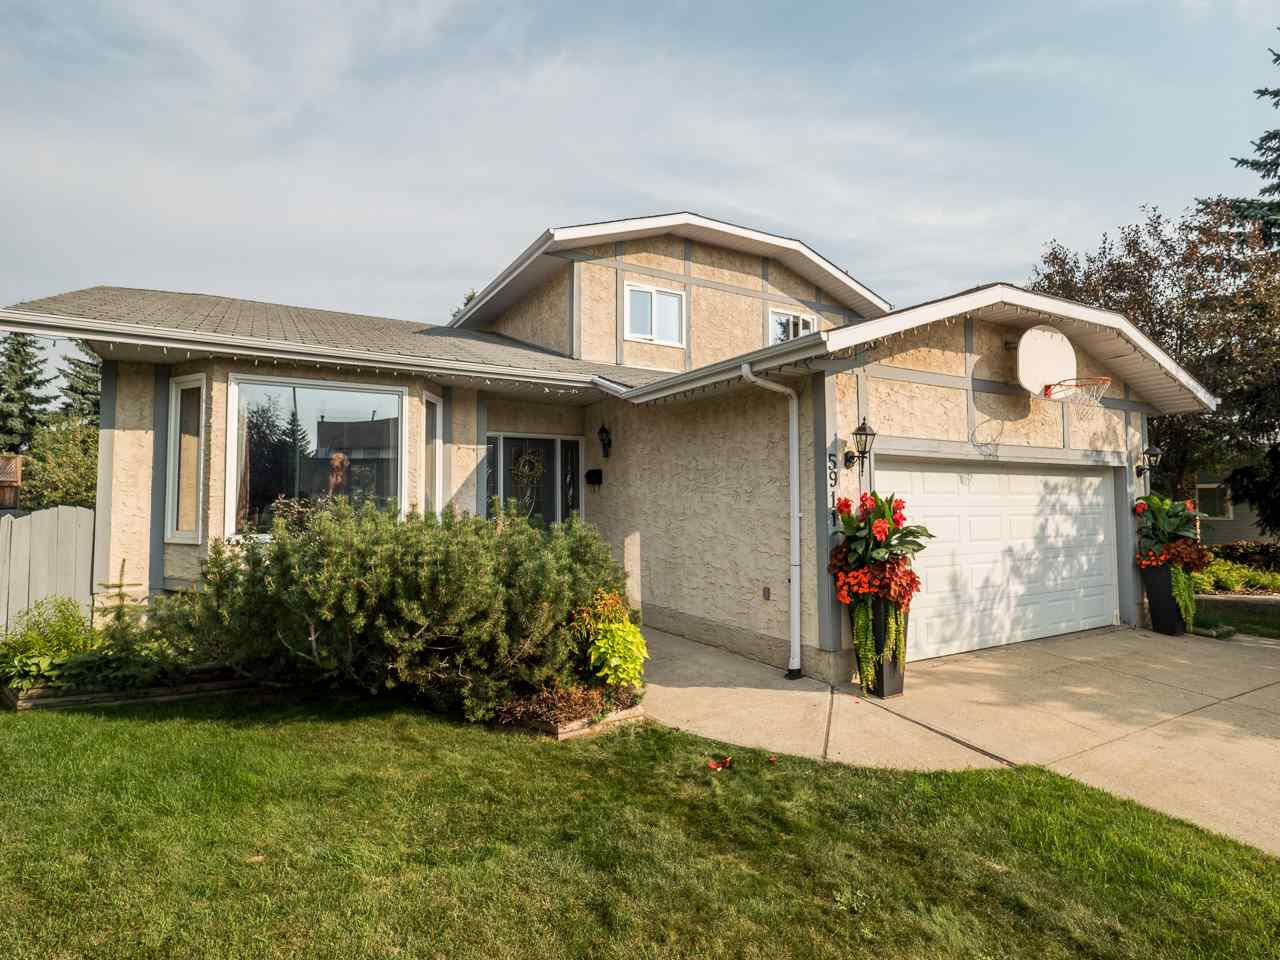 Main Photo: 5911 181 Street in Edmonton: Zone 20 House for sale : MLS®# E4172591